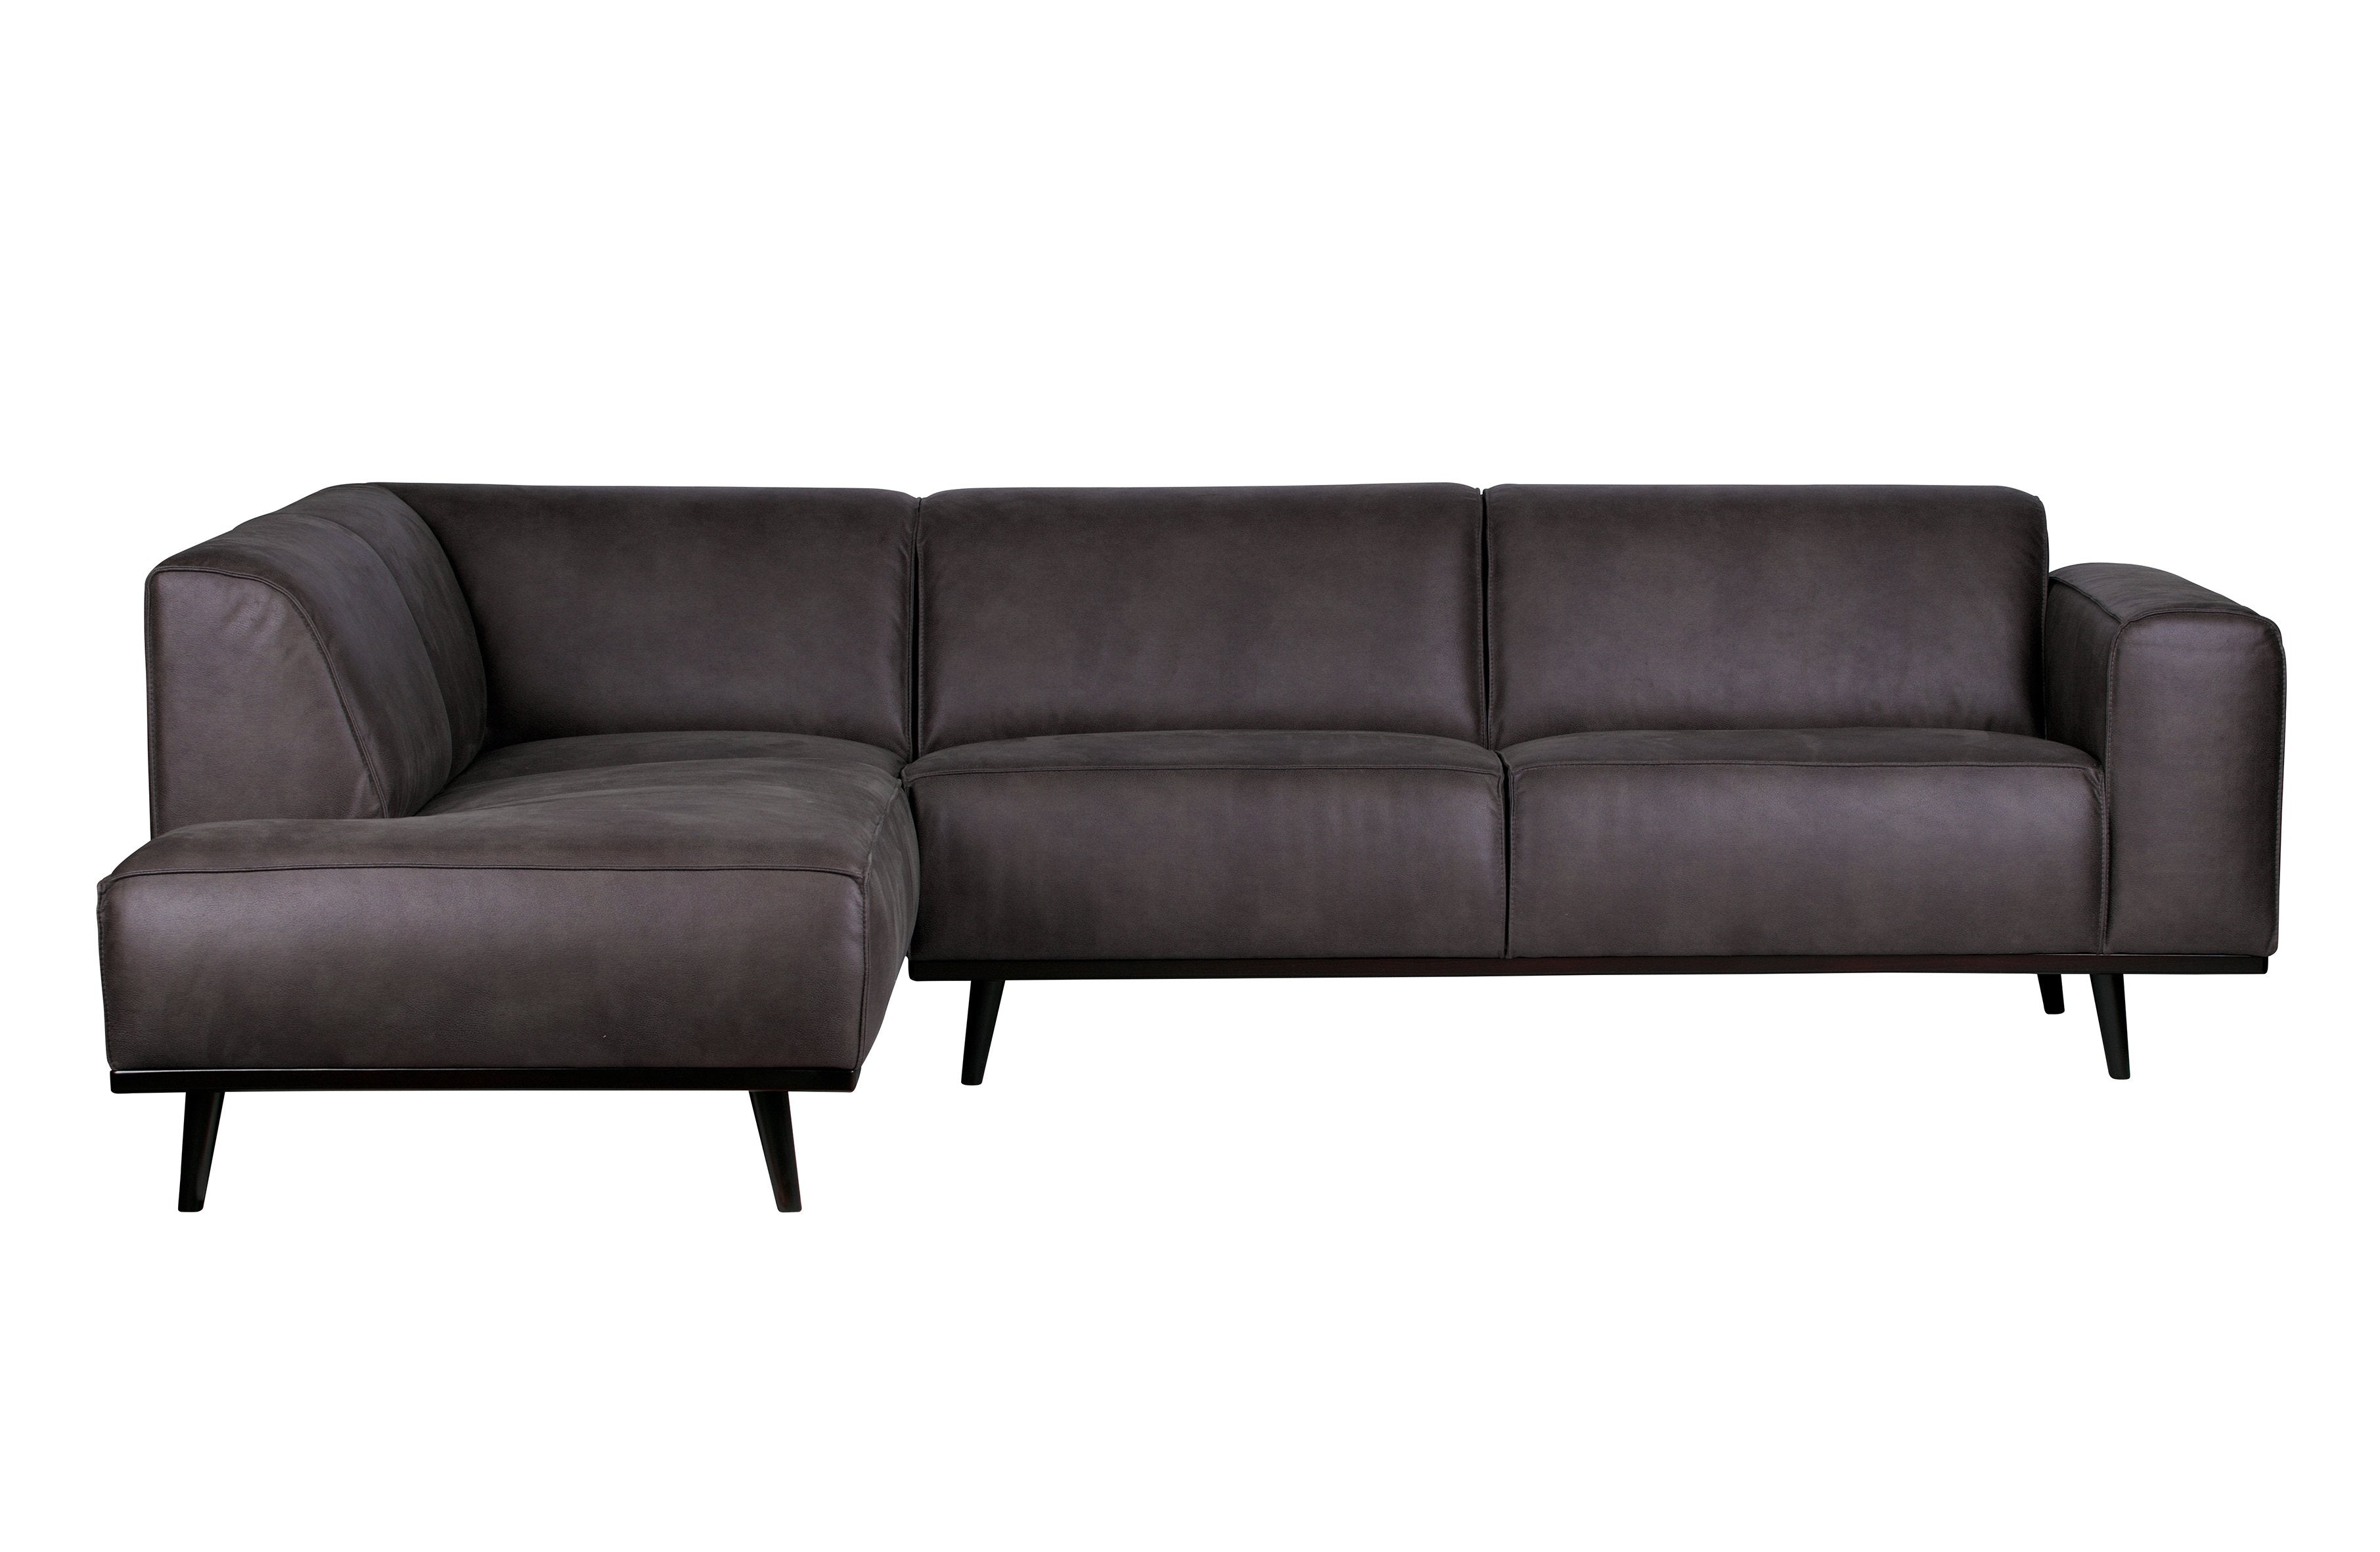 Corner sofa STATEMENT leather